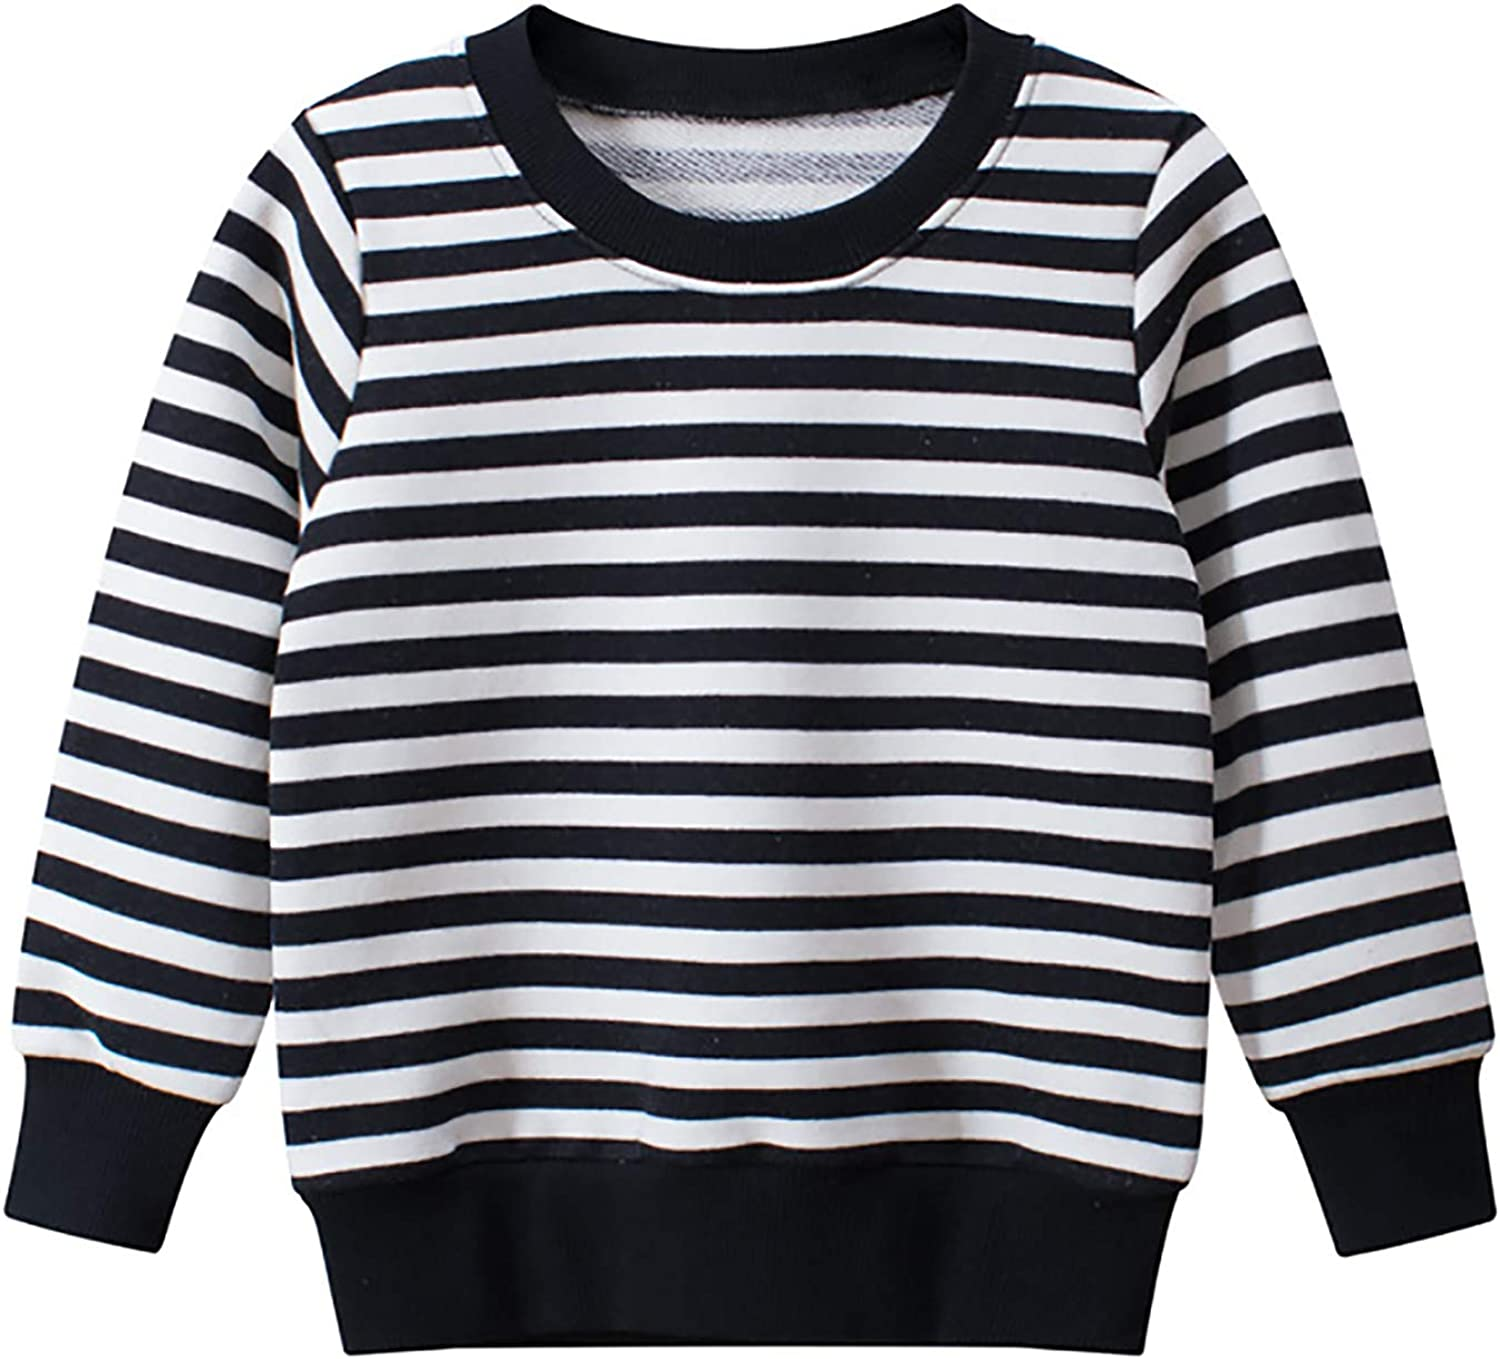 Kids Toddler Girls Boys Striped Sweatshirt Casual Long Sleeve Pullover Tops Tee Shirts Blouse